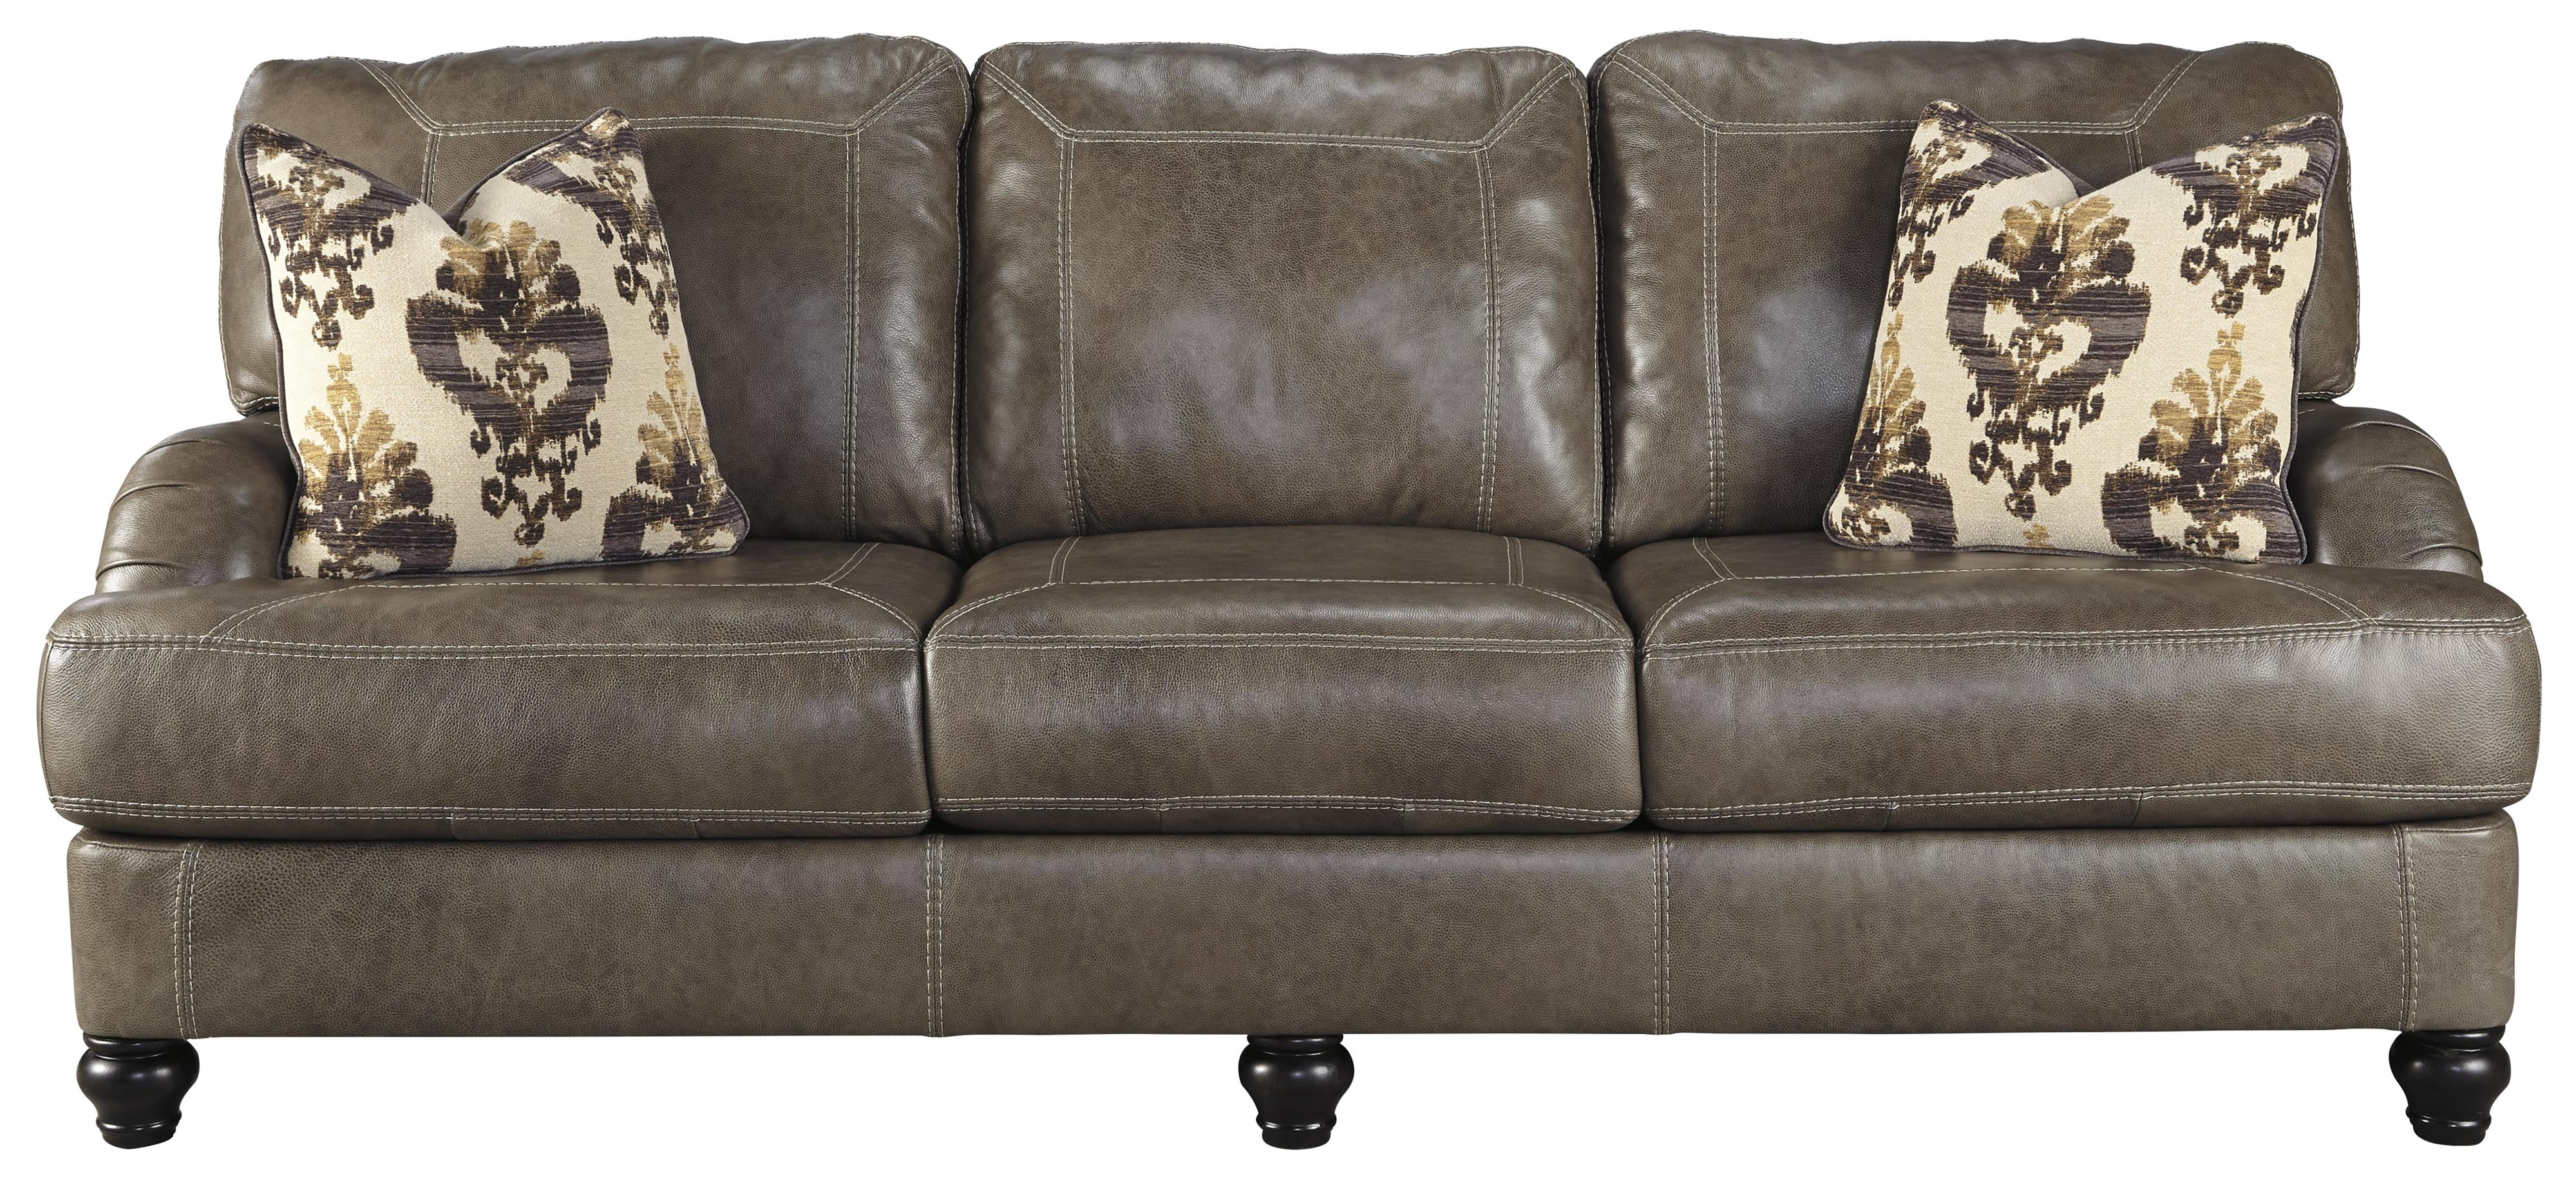 Ashley/Benchcraft Kannerdy Queen Sofa Sleeper - Item Number: 8040239